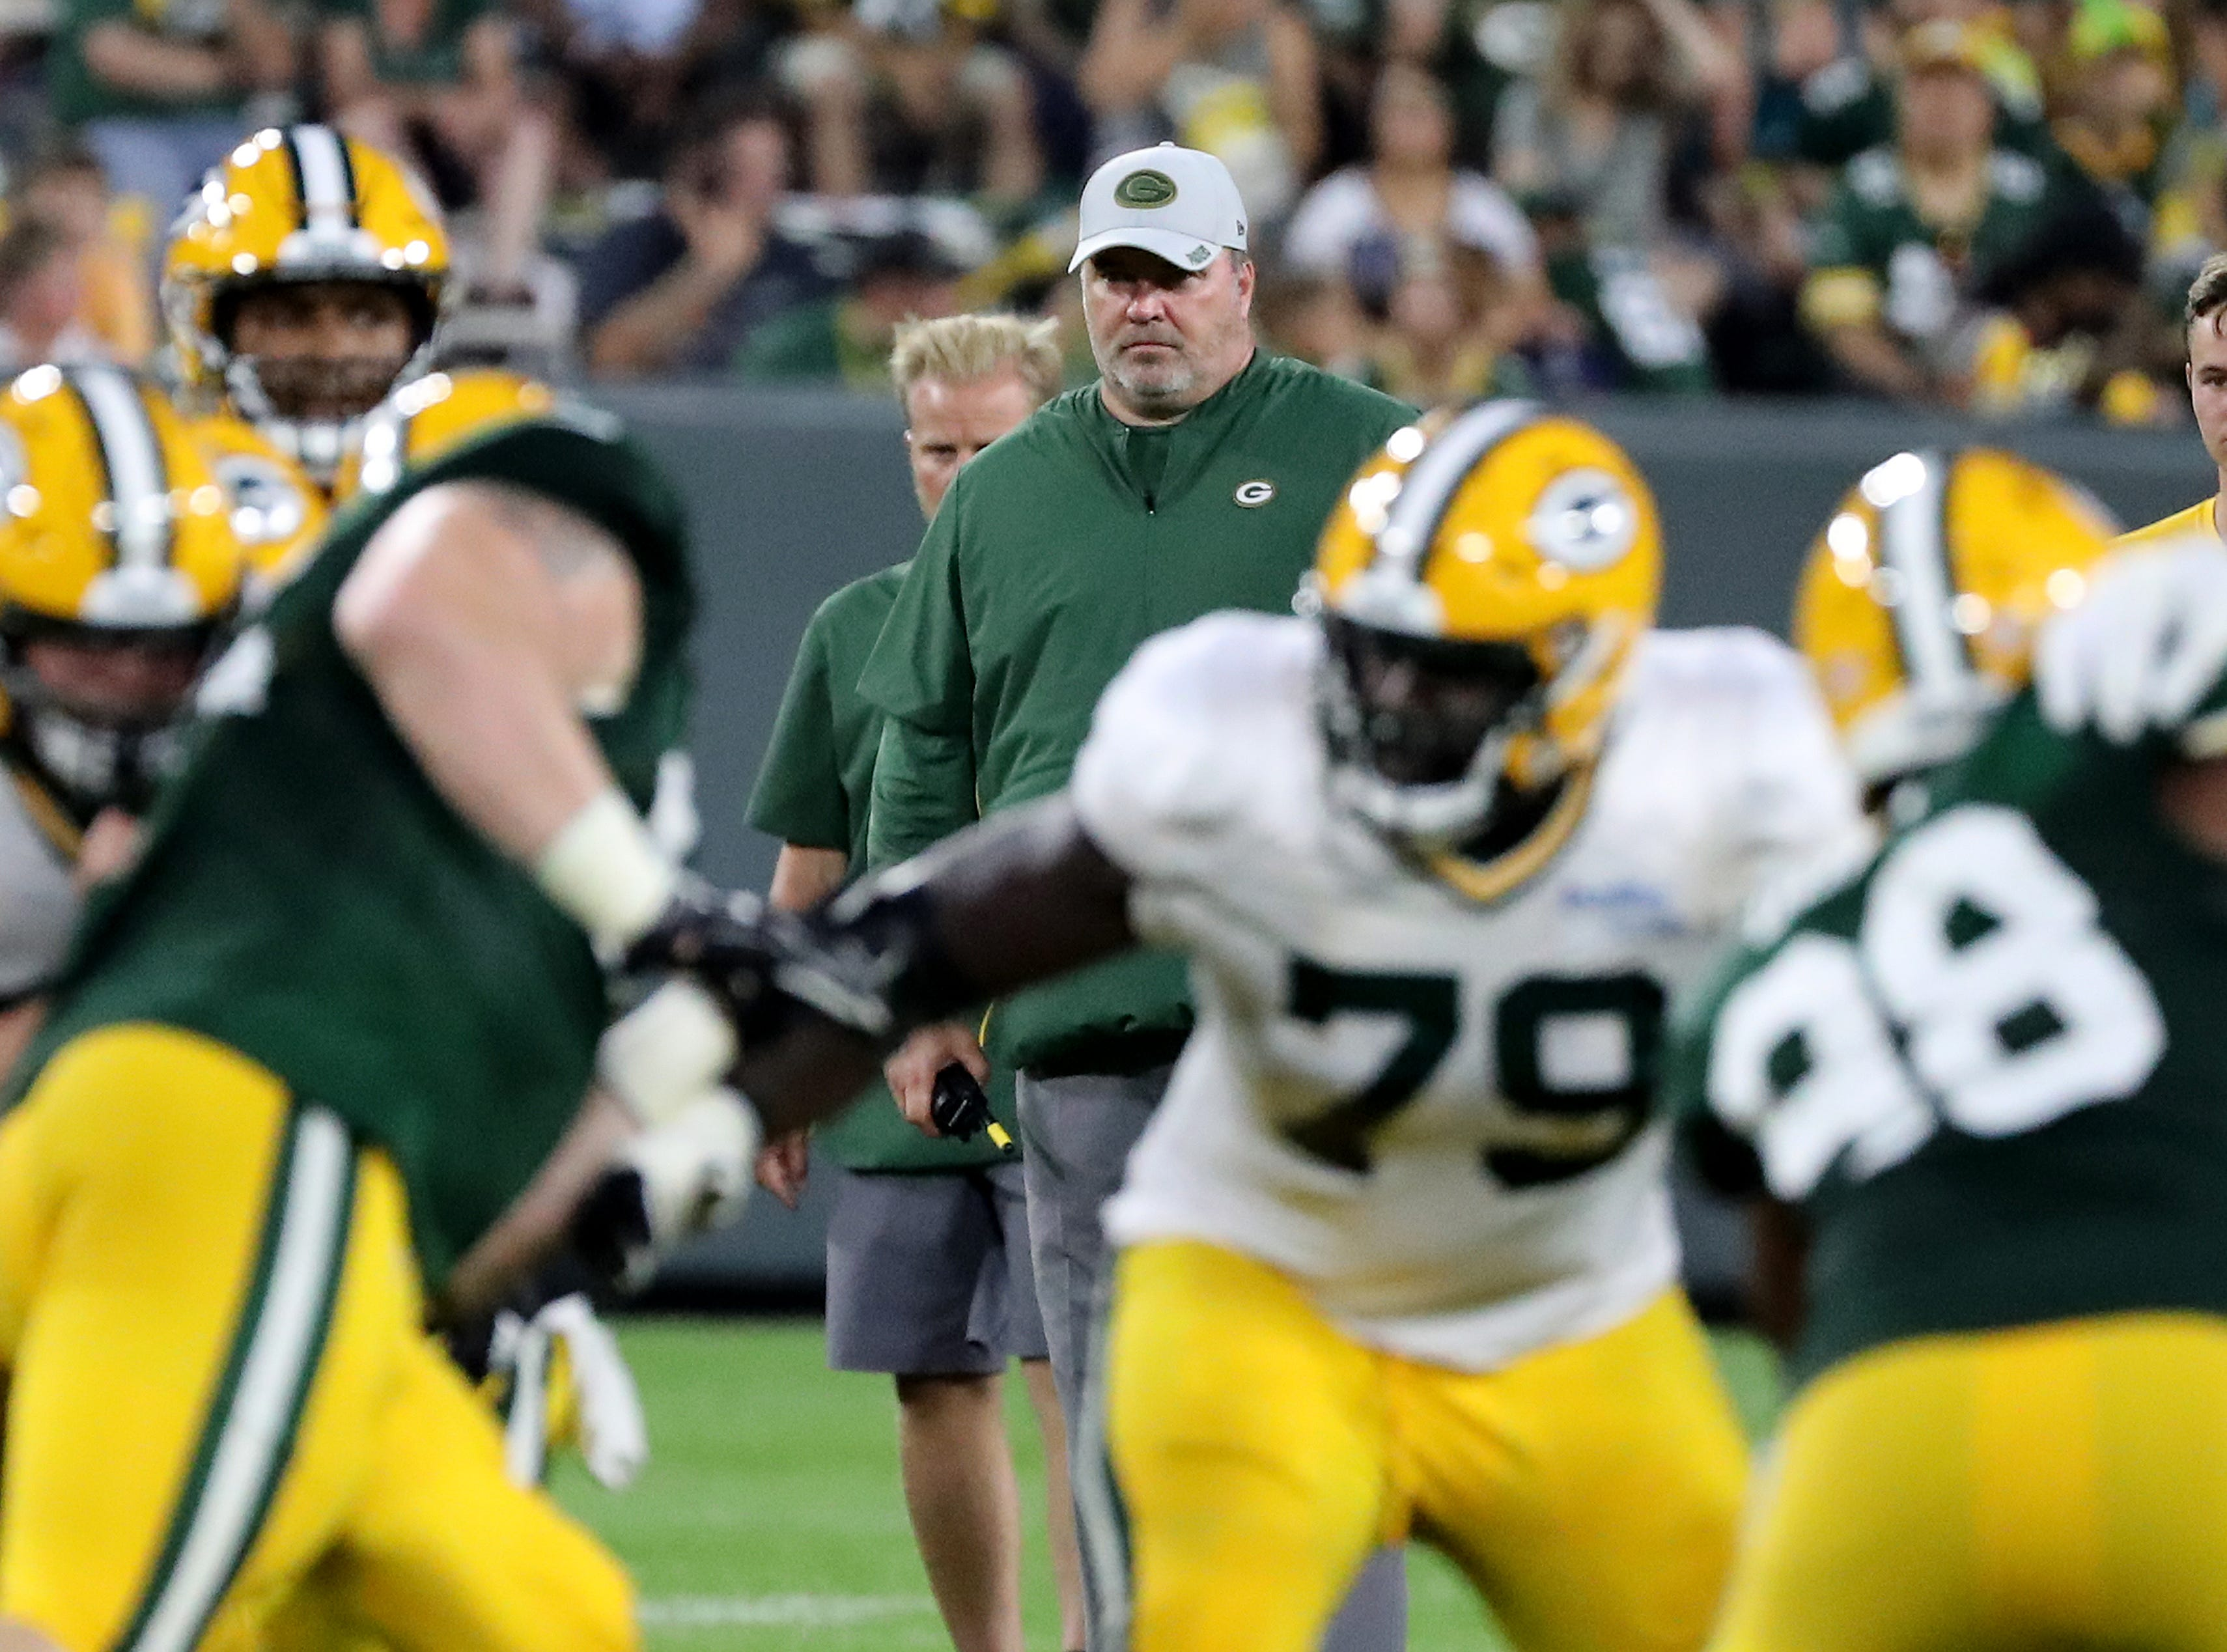 Head coach Mike McCarthy watches a play during Green Bay Packers Family Night  Saturday, August 4, 2018 at Lambeau Field in Green Bay, Wis.,